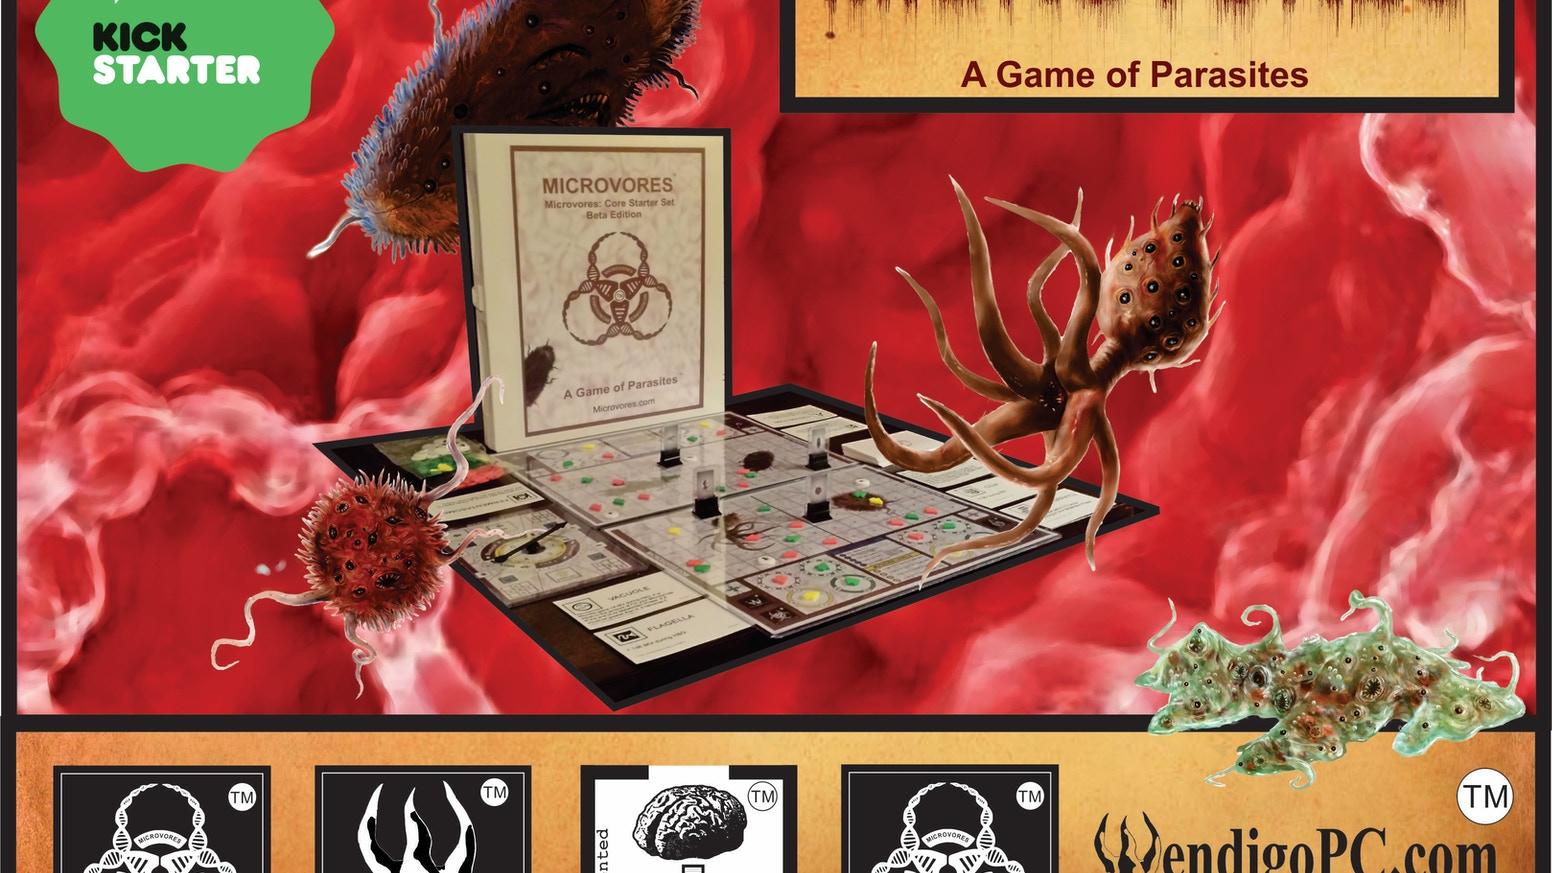 What will your strategy be to survive as a microorganism? Hunt & Gather, Evolve, Mutate, Proliferate, or die trying!